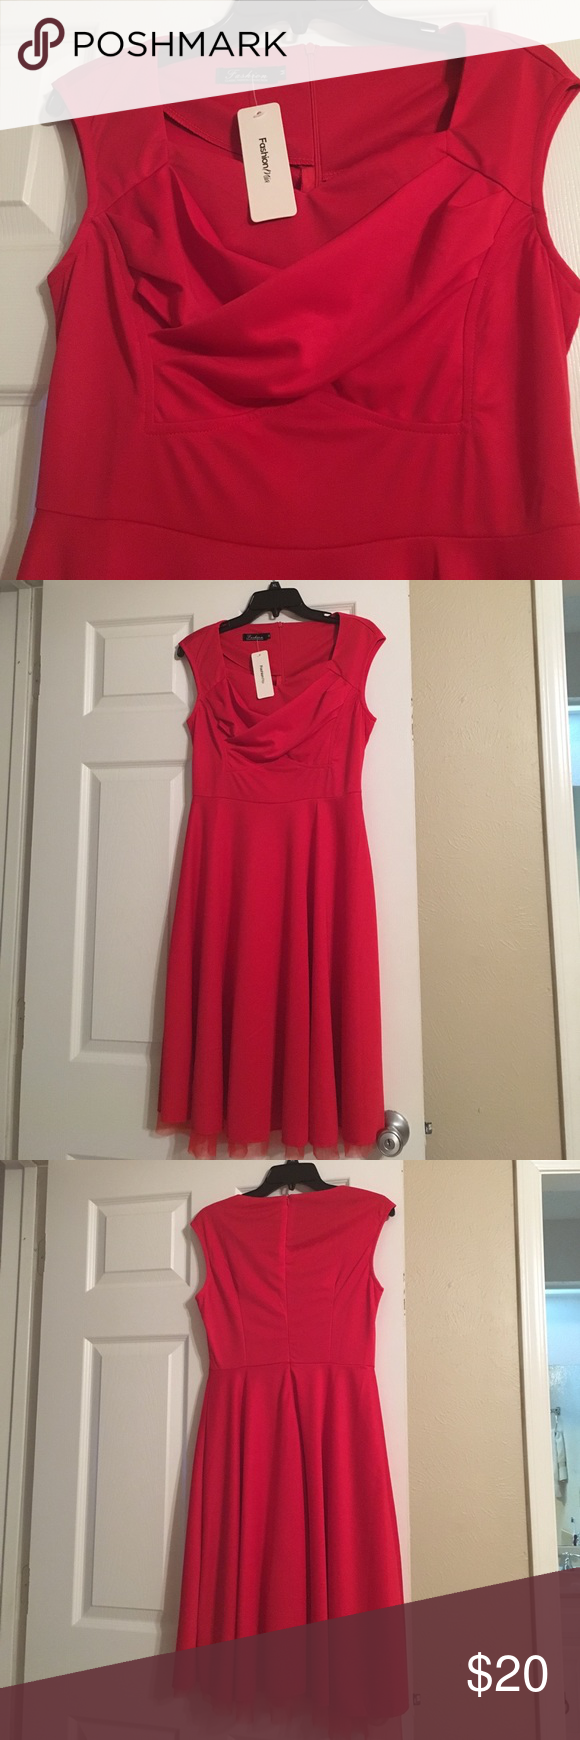 Red dress Brand new with tags. I bought it and never wore it. Now it's to big for me. Size M. Like an 8. fashion mia Dresses Midi